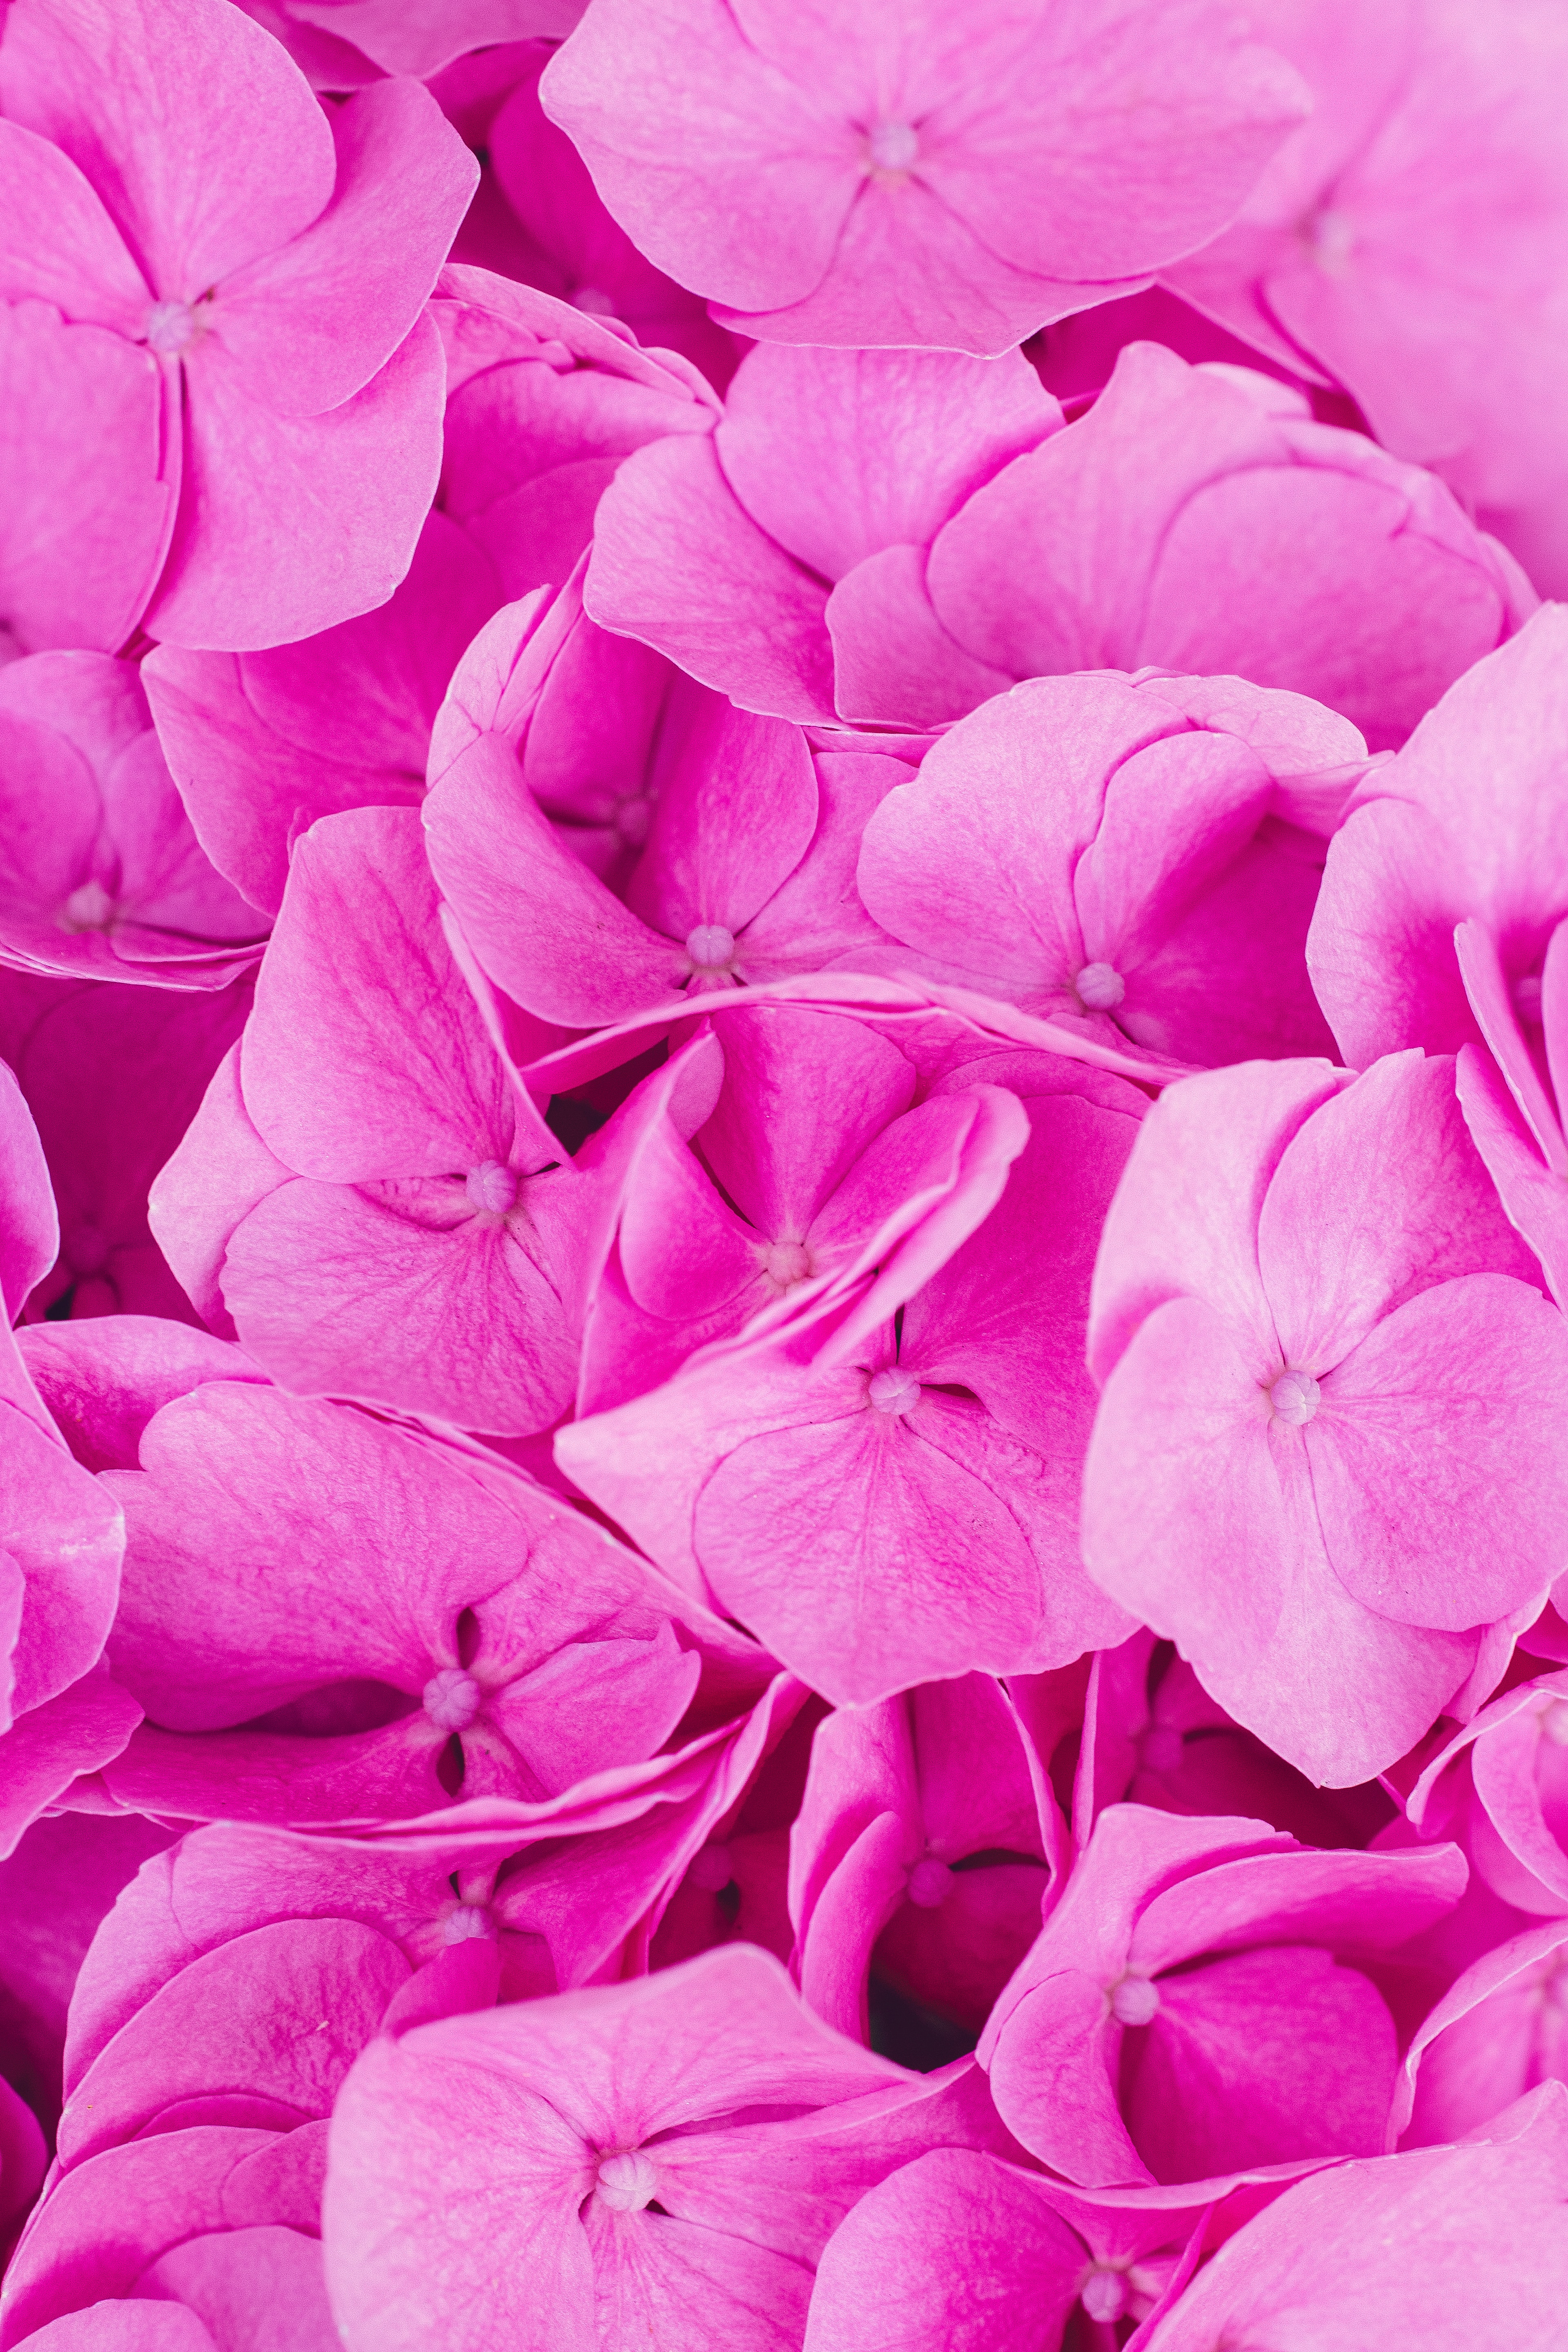 100+ Pink Flower Pictures.